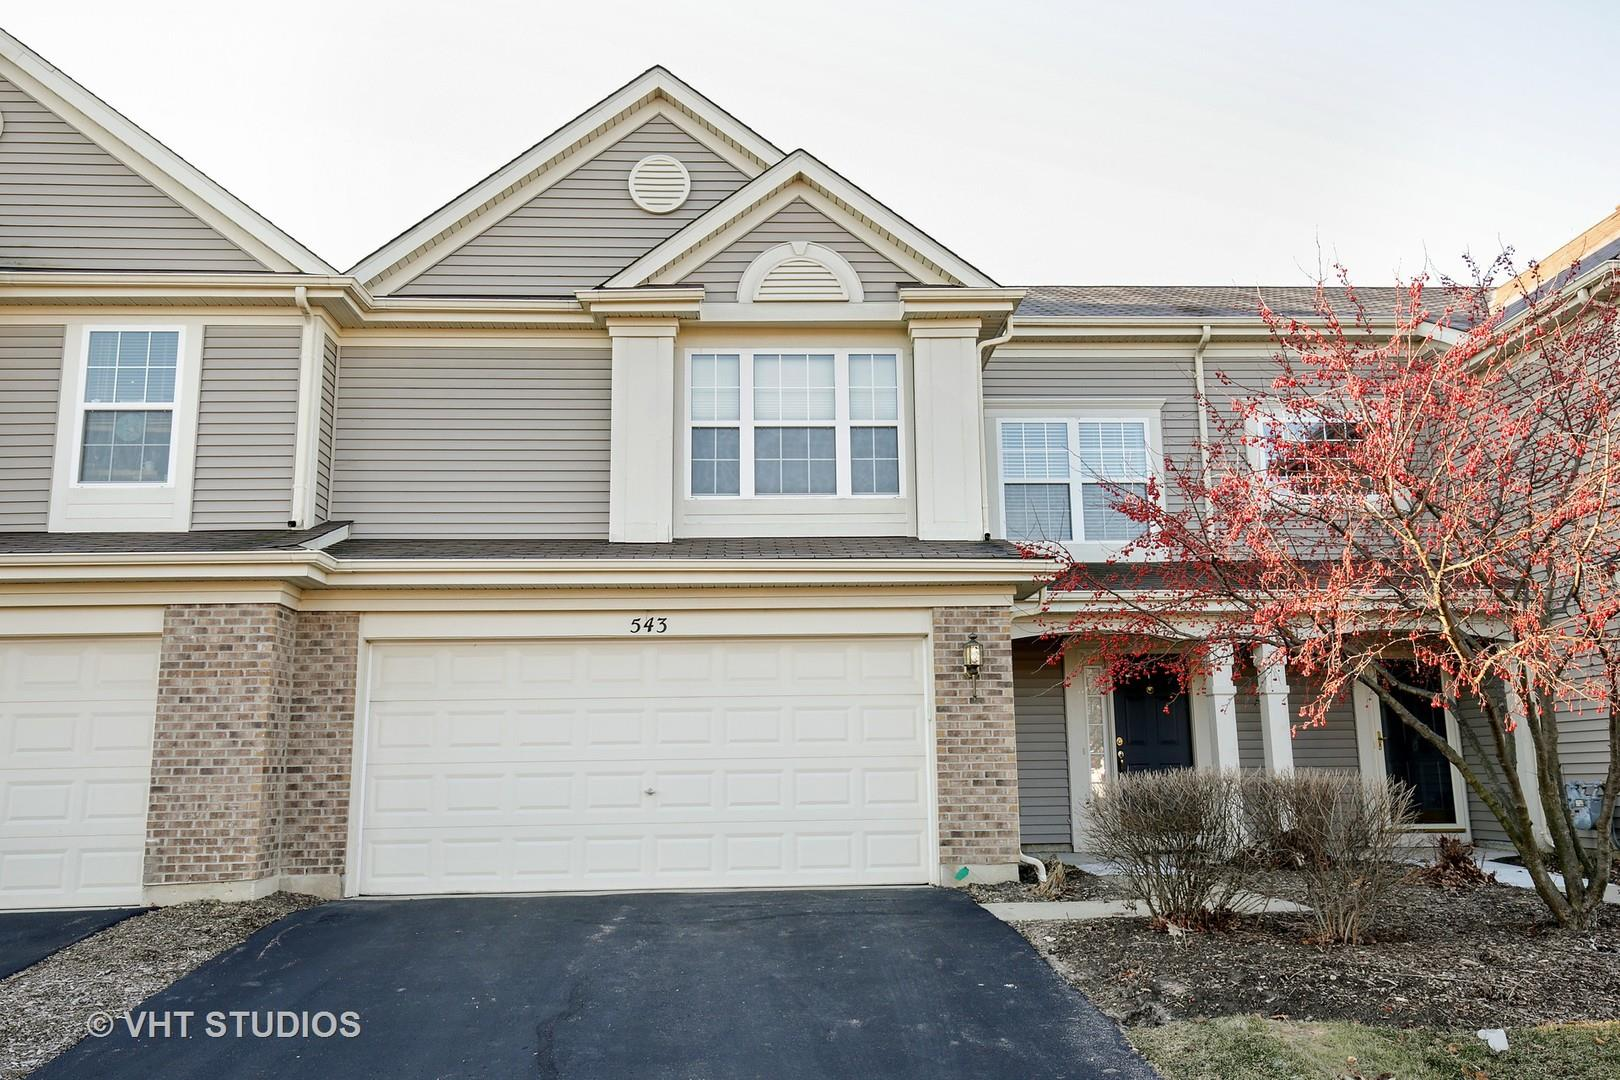 543 Yorkshire Lane, Pingree Grove, IL 60140 - #: 10627739